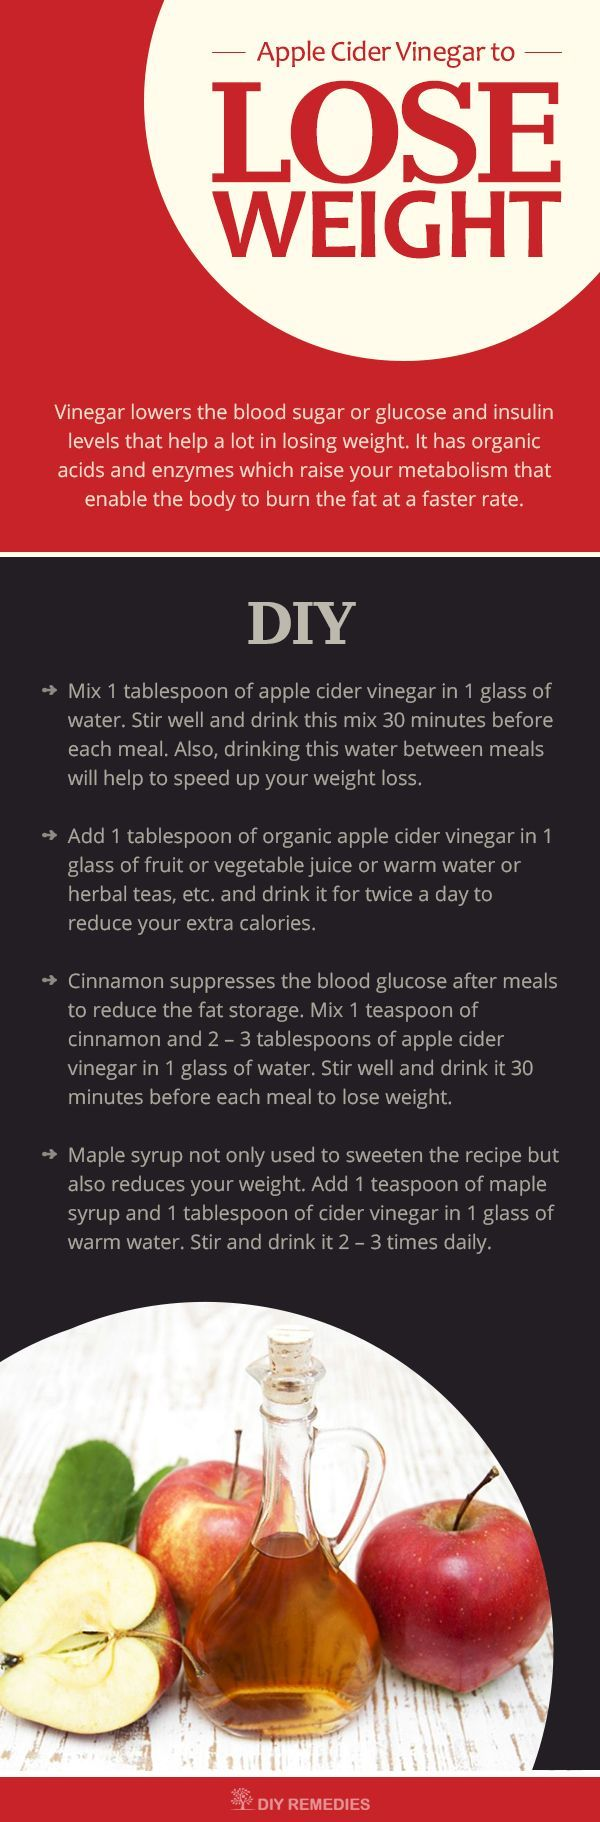 How to use water with lemon for weight loss ehow - Lose Weight With Apple Cider Vinegar